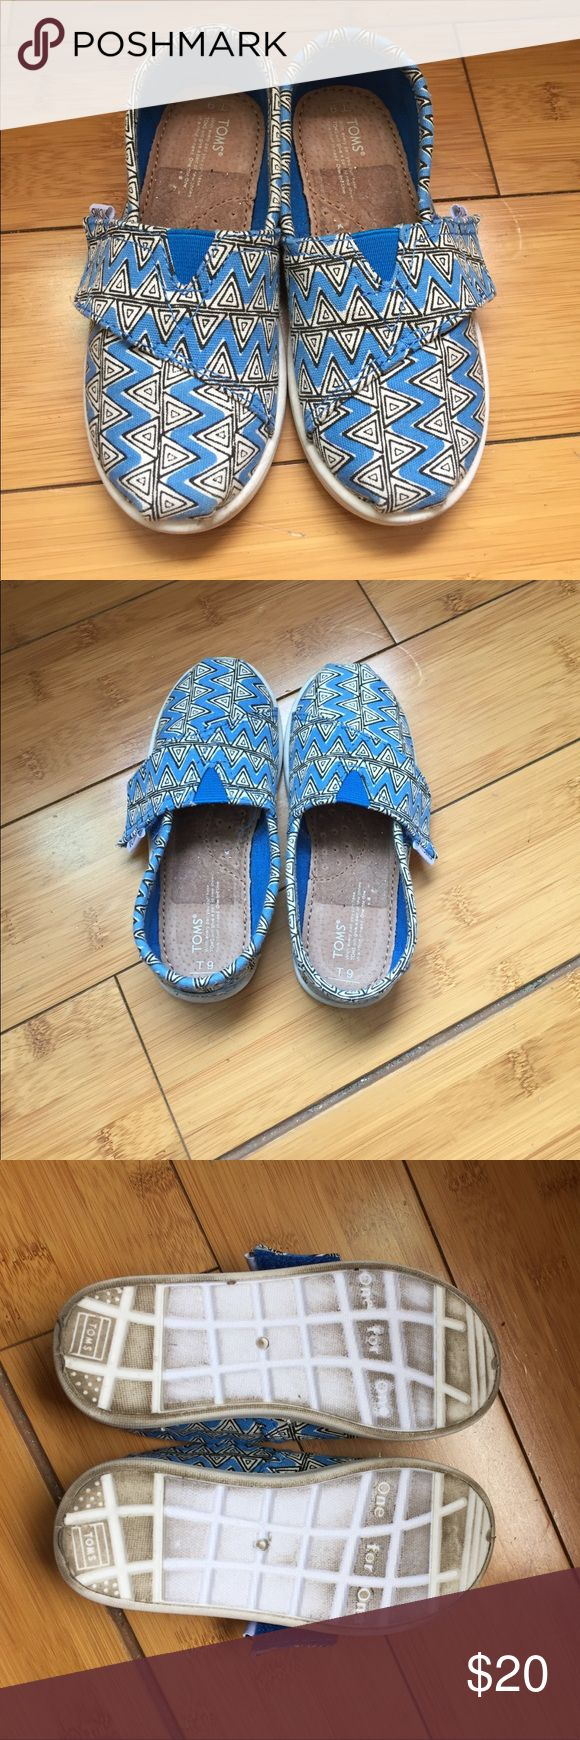 Blue and white Kids TOMS - 9 - worn once Blue and white Kids TOMS. Size 9 Worn once! He didn't want to get them dirty 💙😂 TOMS Shoes Sneakers